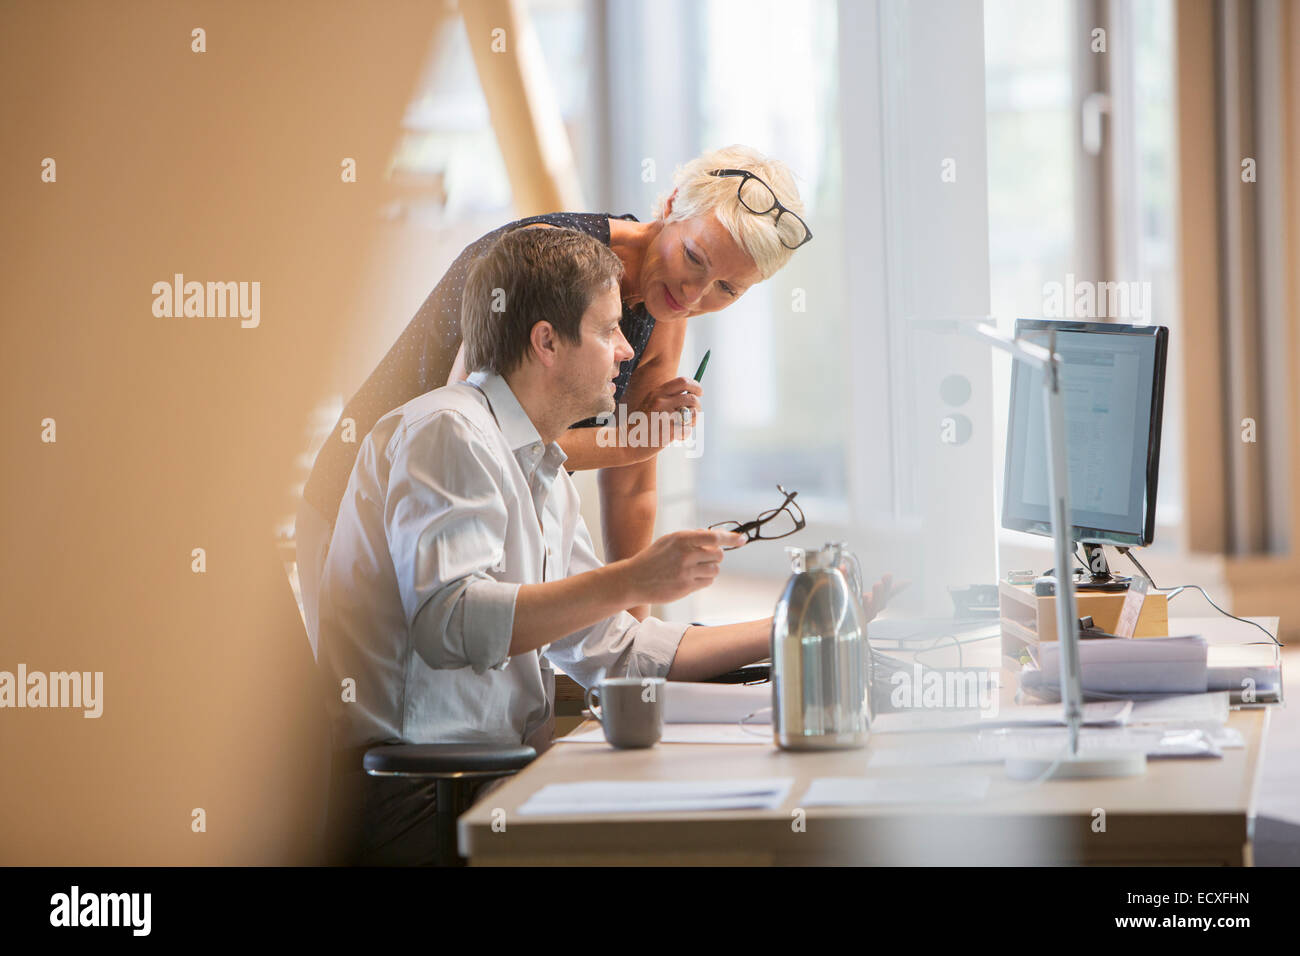 Business people talking at office desk - Stock Image